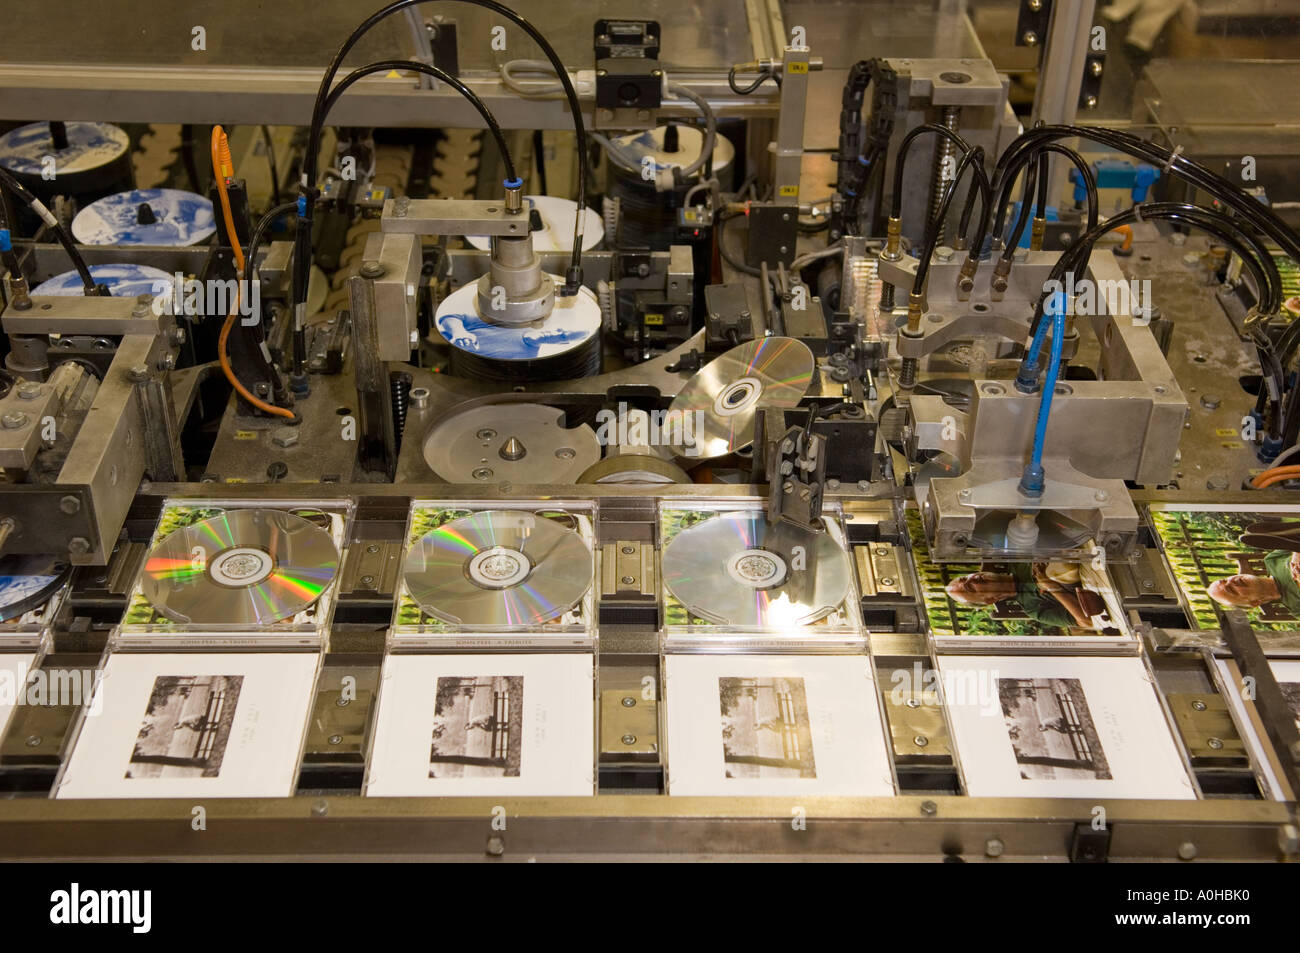 Automated CD packing system - Stock Image